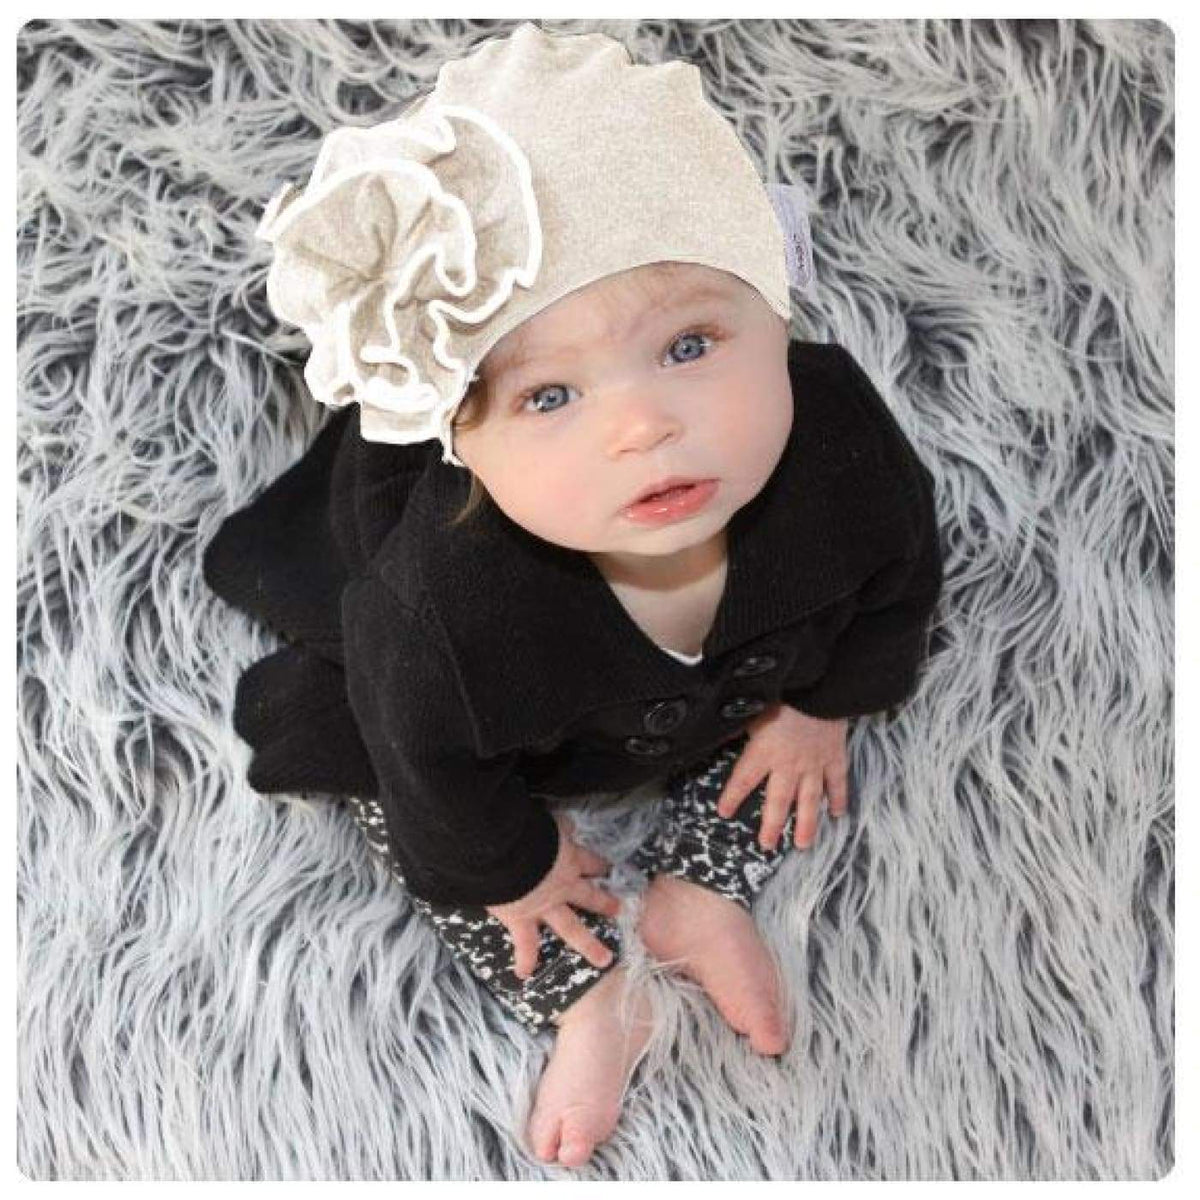 Mod Swad Bamboo Flower Beanie - Bisque - Medium - Medium / Bisque - BABY & TODDLER CLOTHING - BEANIES/HATS